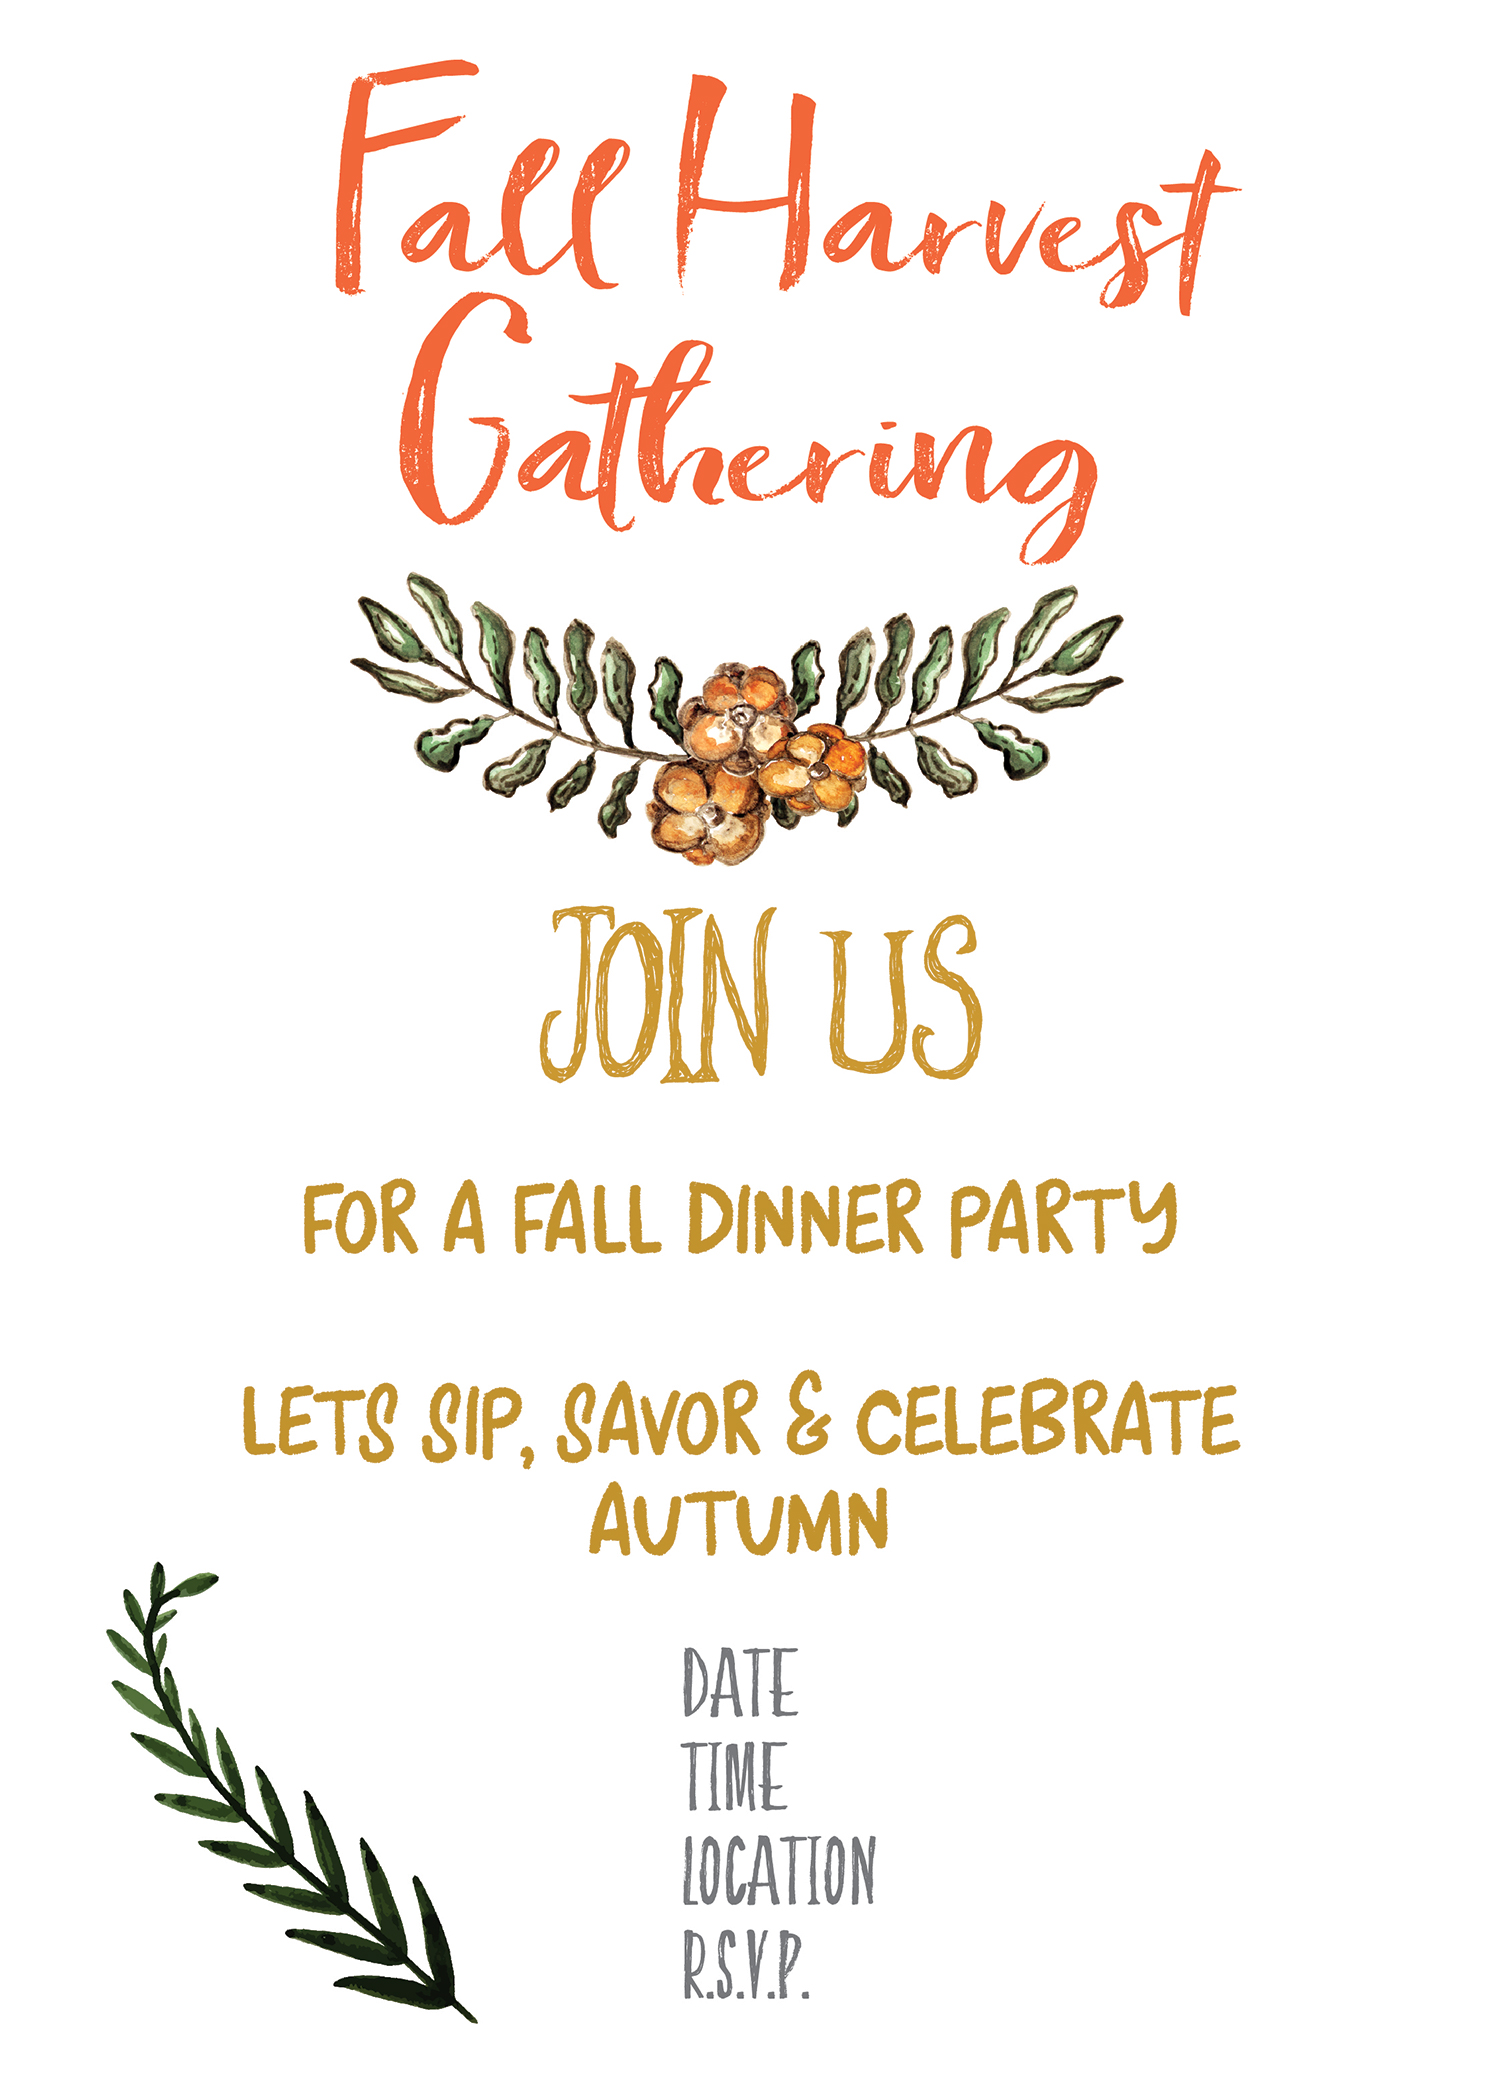 image regarding Printable Party Invite named Drop Harvest Celebration Invitation Printable - Obtain for Bread